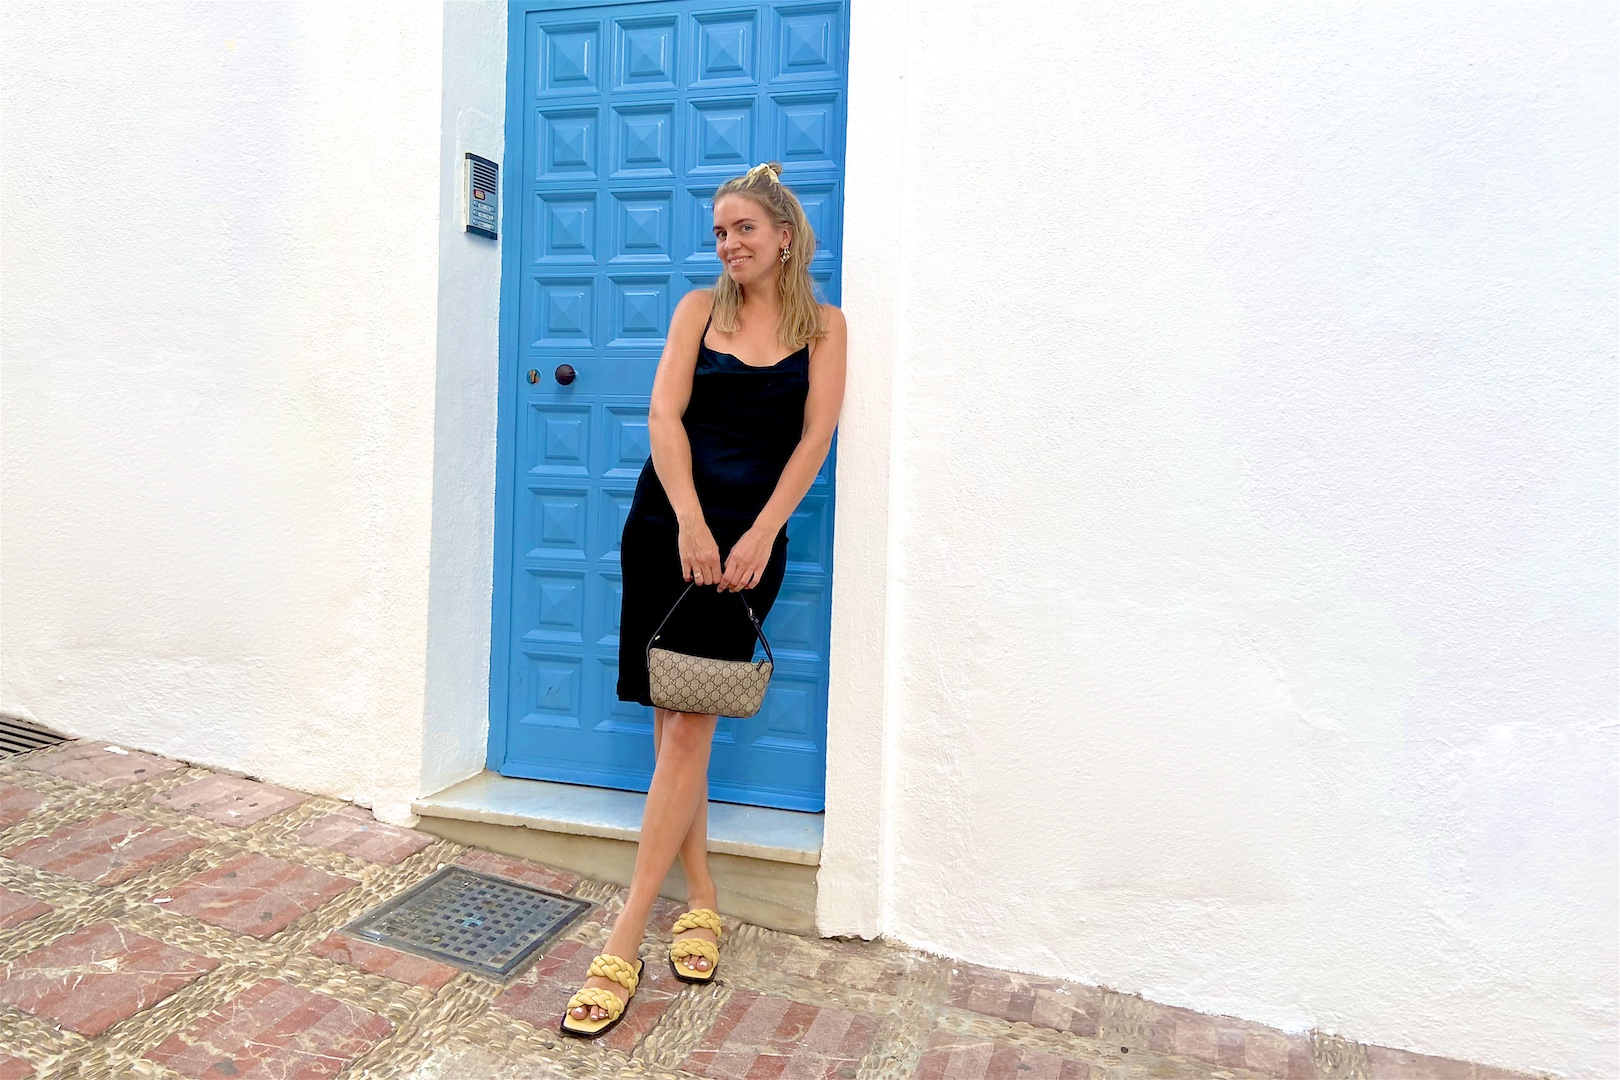 Little Black Dress. Fashion Blogger Girl by Style Blog Heartfelt Hunt. Girl with blond half-up half-down hairstyle and scrunchie wearing a little black dress, Gucci bag and braided sandals.